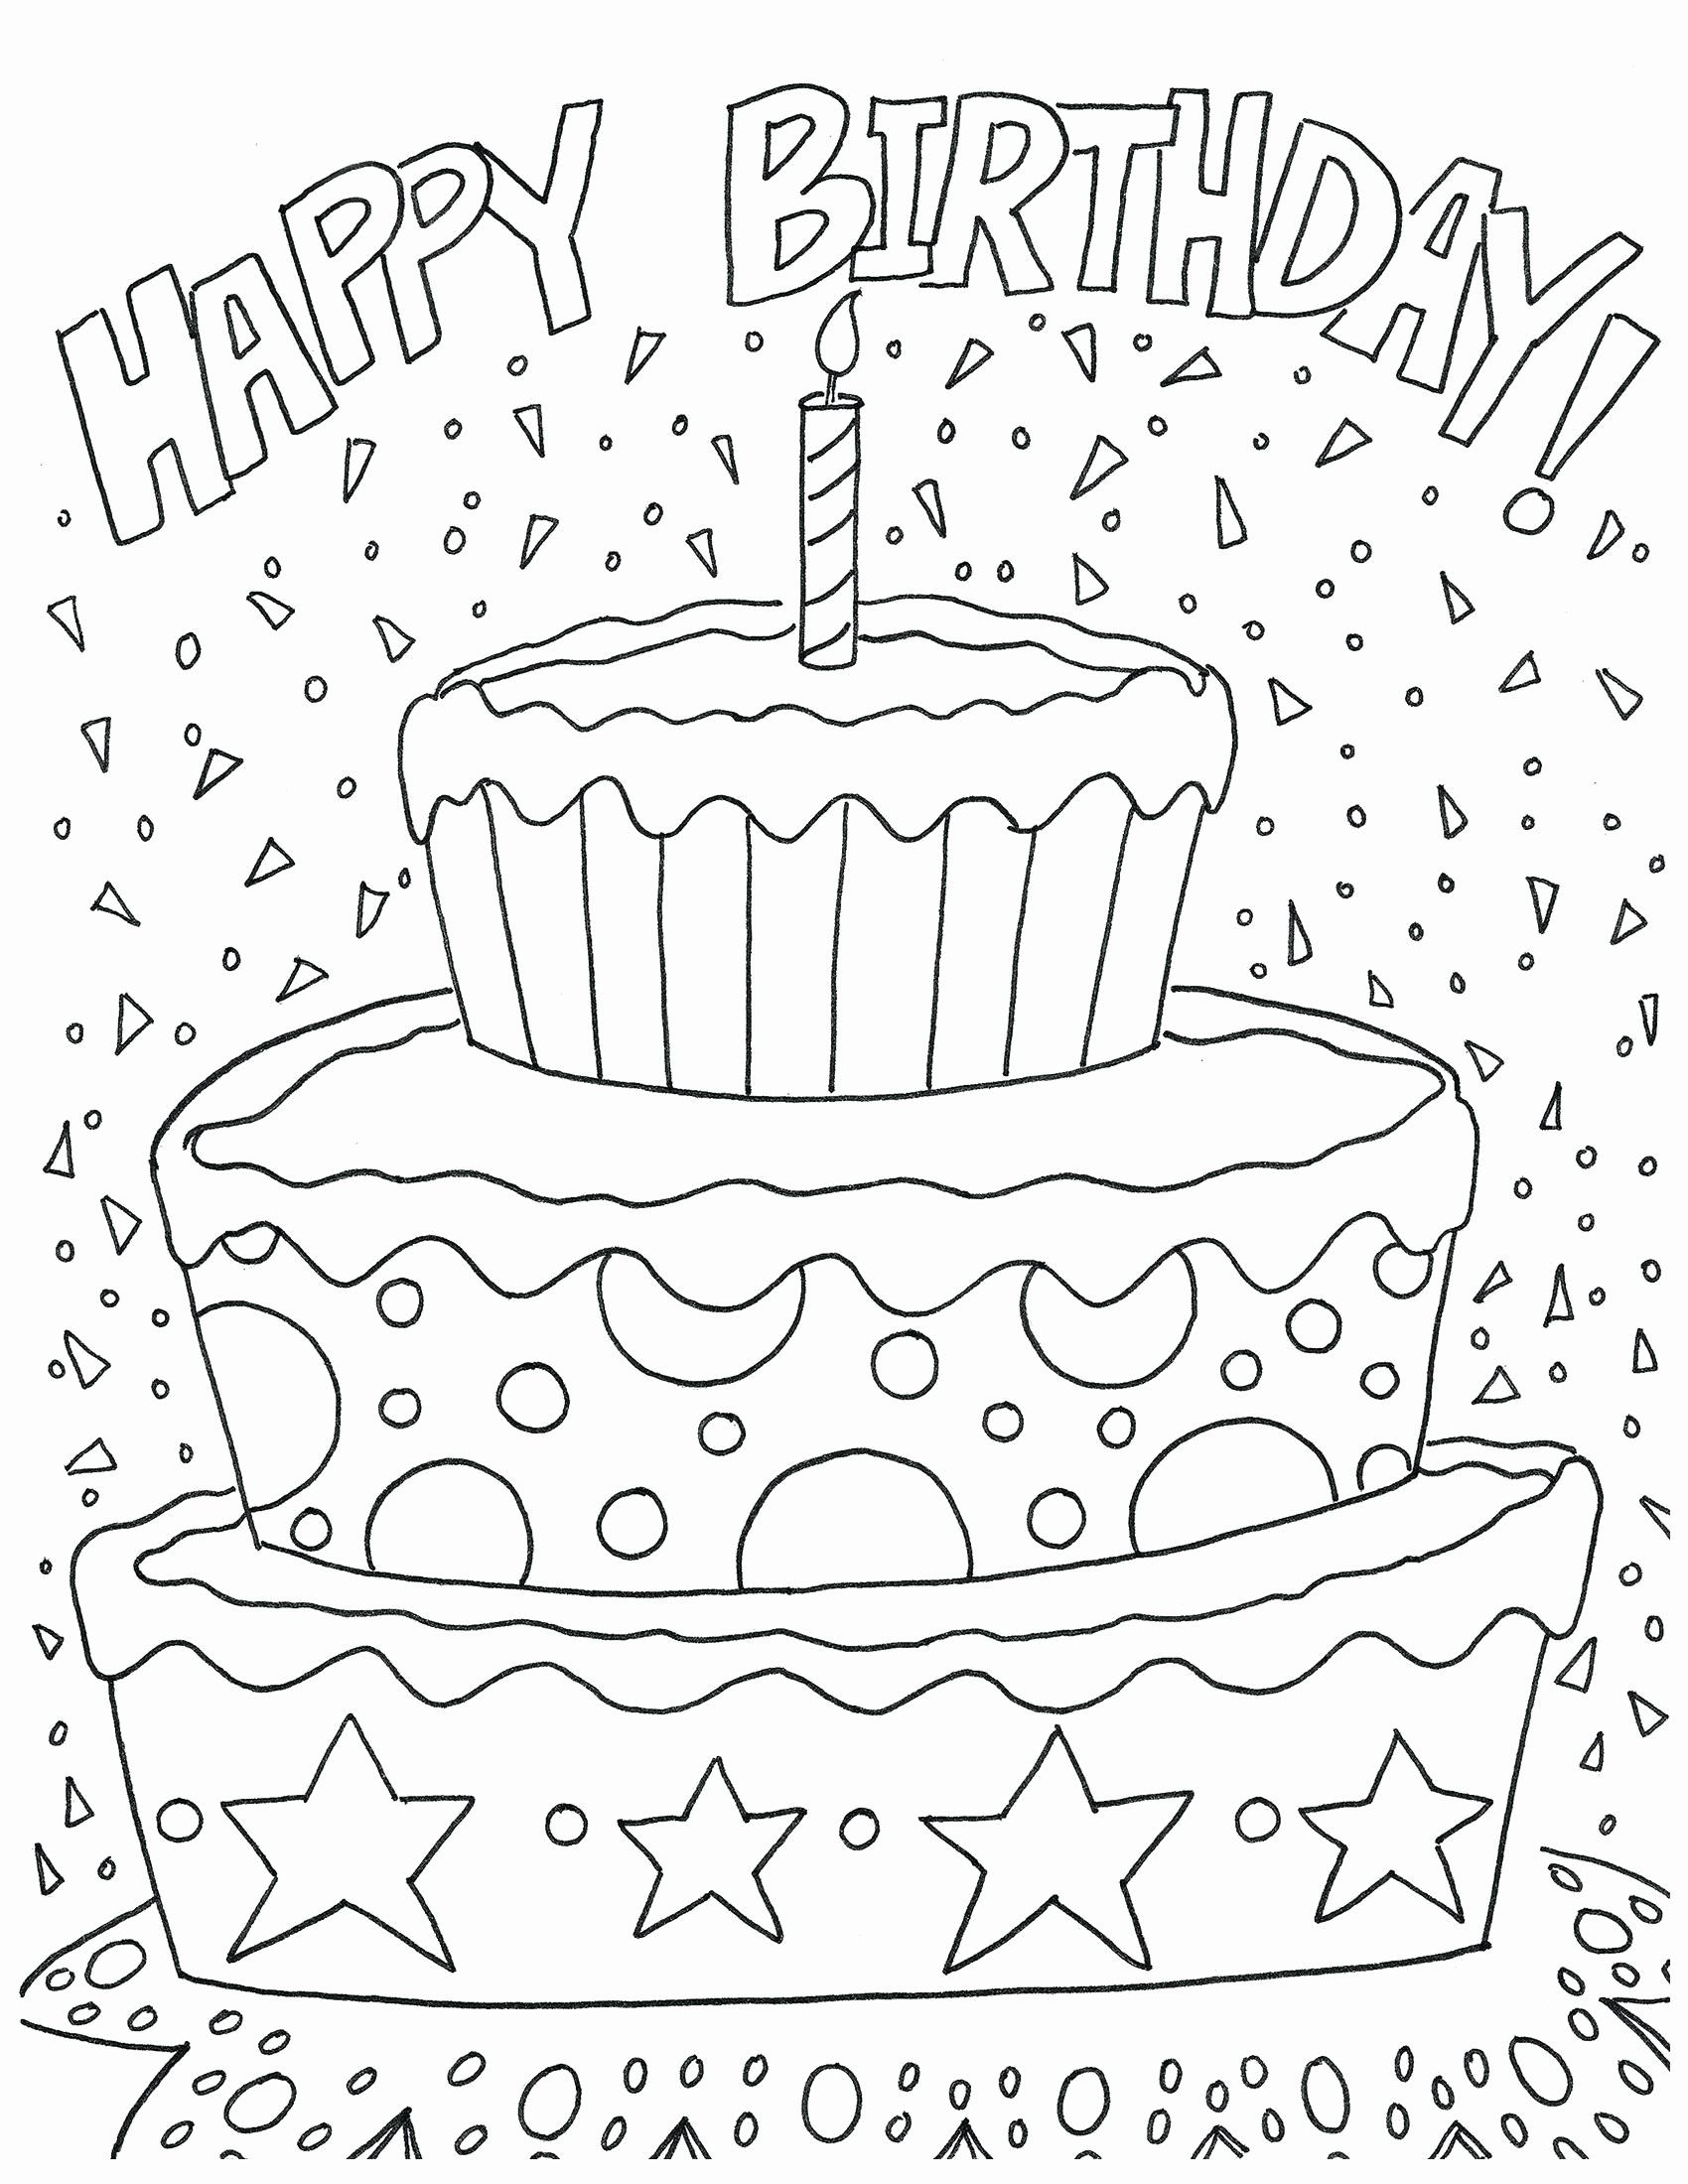 Happy Birthday Adult Coloring Pages In 2020 Coloring Birthday